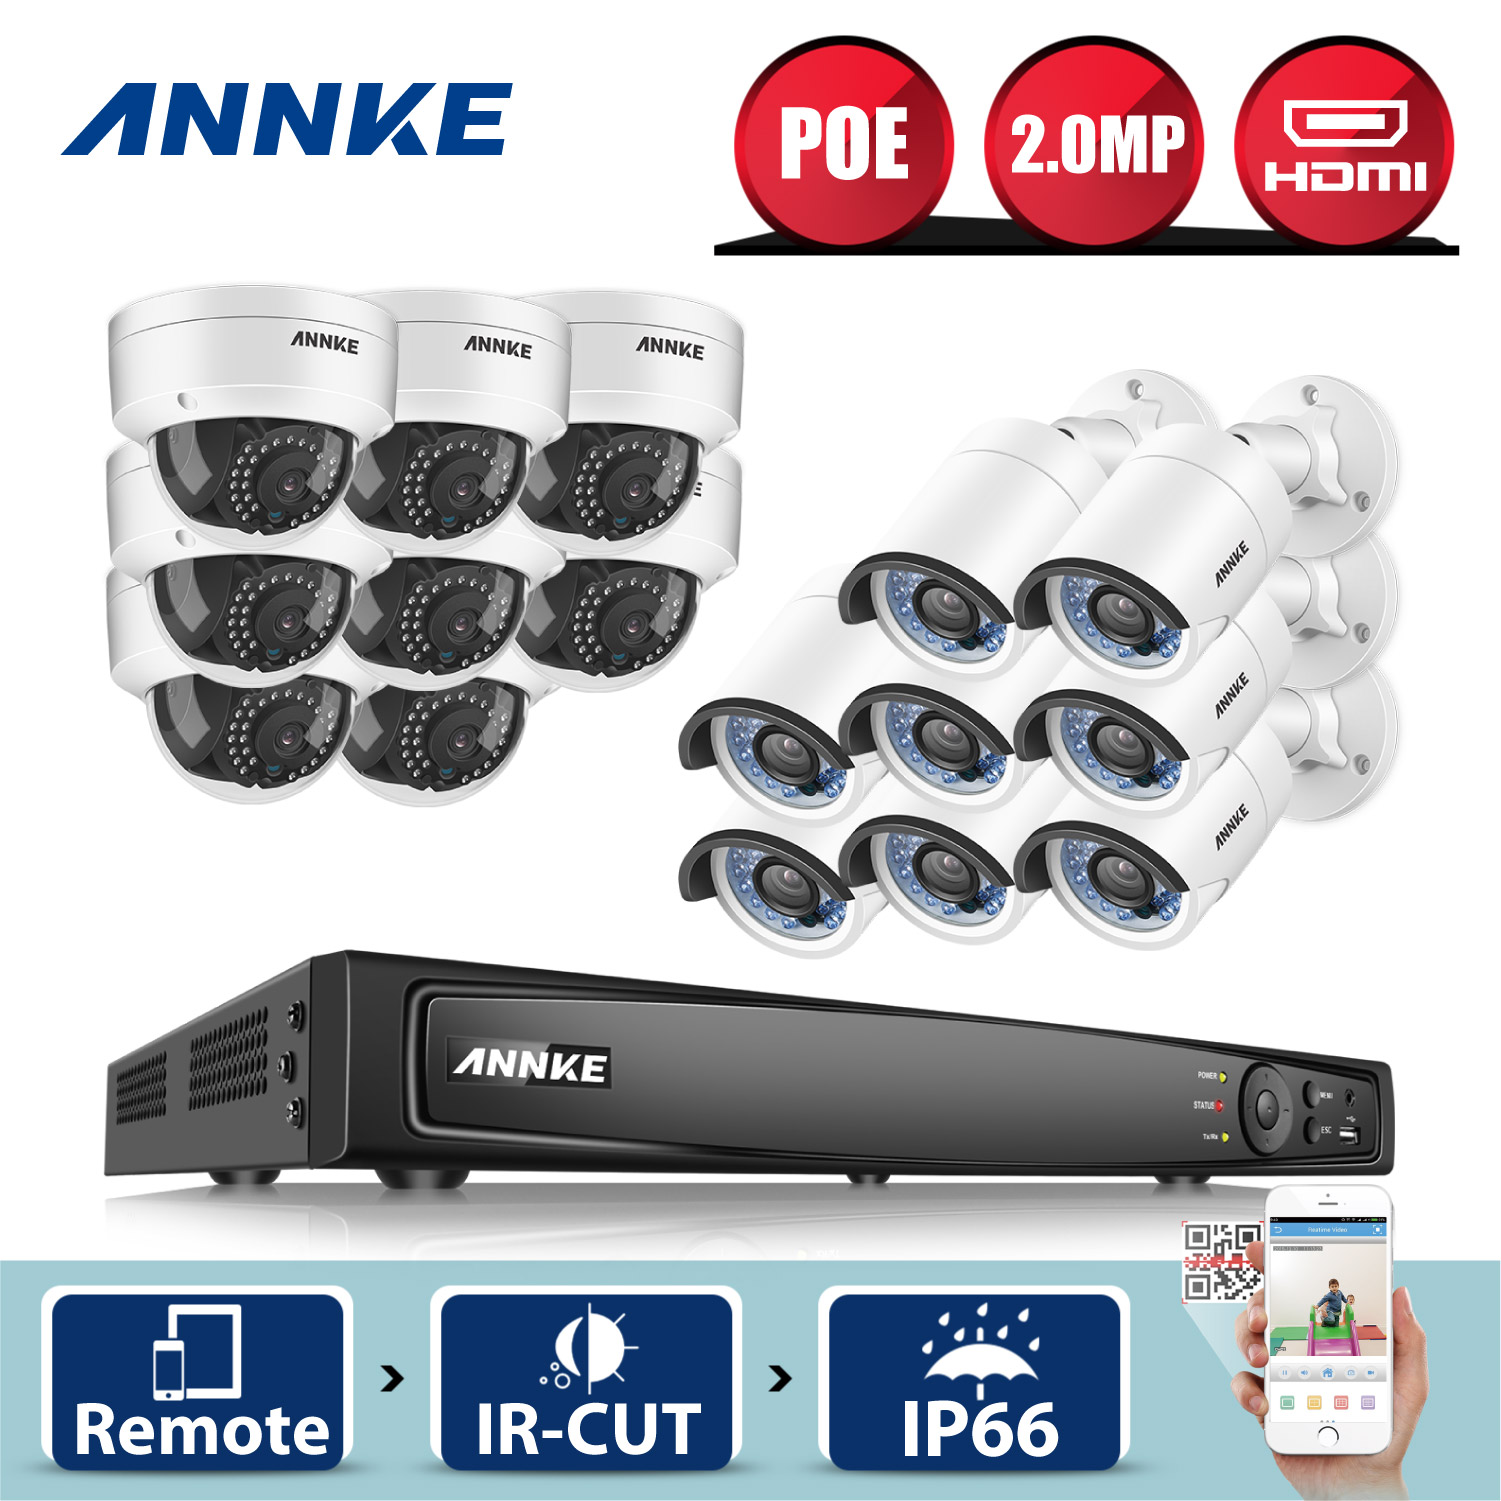 ANNKE Professional 16CH 1080P POE Security Camera System 16CH Security NVR With 8pcs 2MP CCTV Dome/Bullet Cameras, No HDD